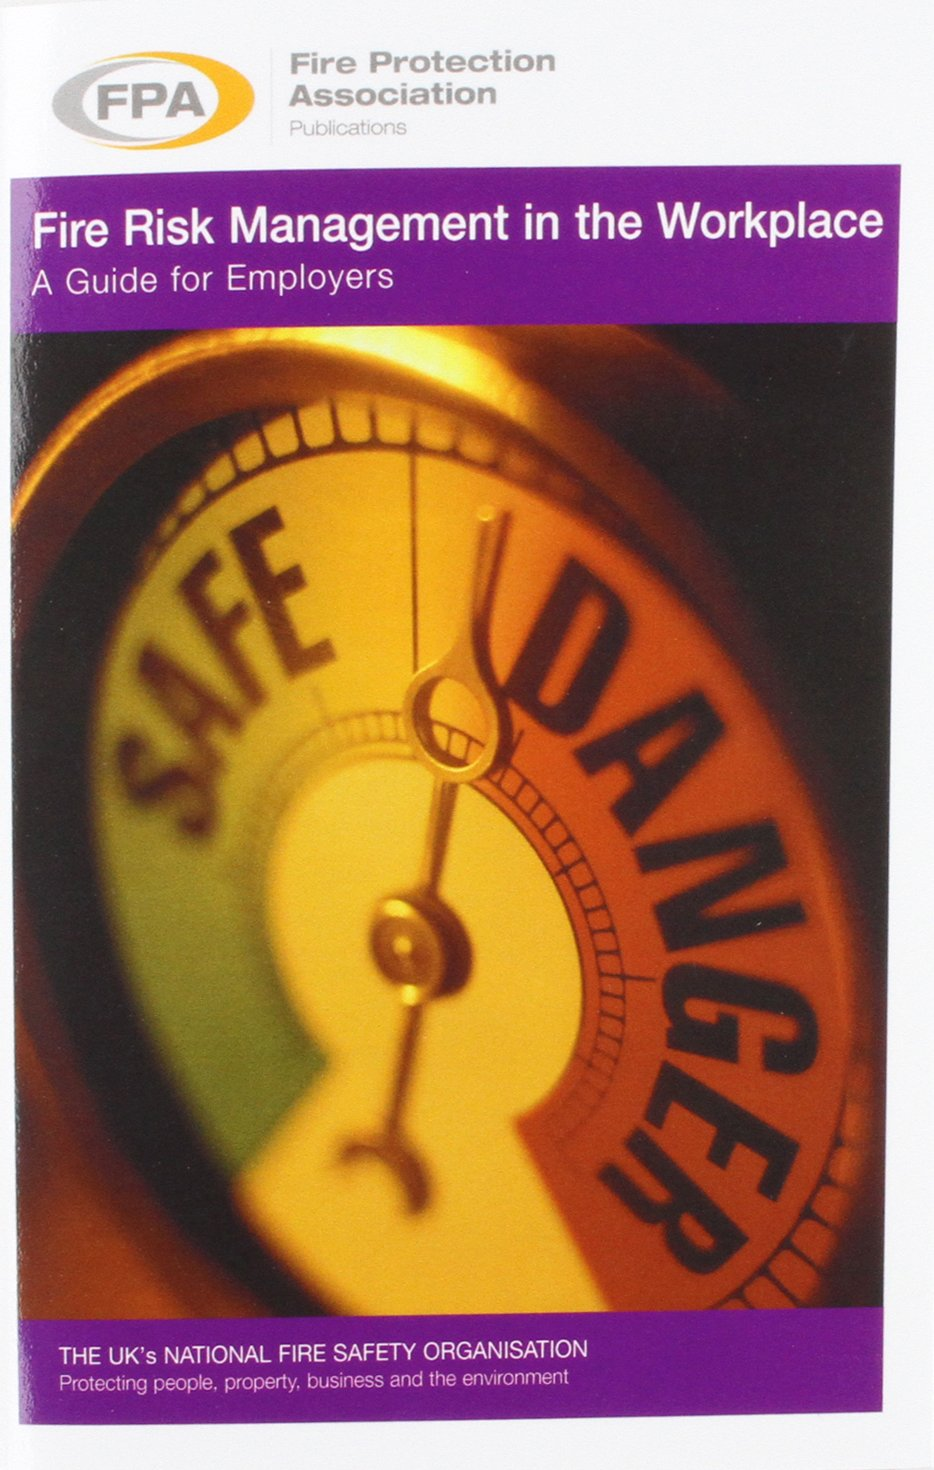 Fire Risk Management in the Workplace. a Guide for Employers (Fpa Library  of Fire Safety): Amazon.co.uk: Adair Lewis, William Dailey: 9781902790404:  Books